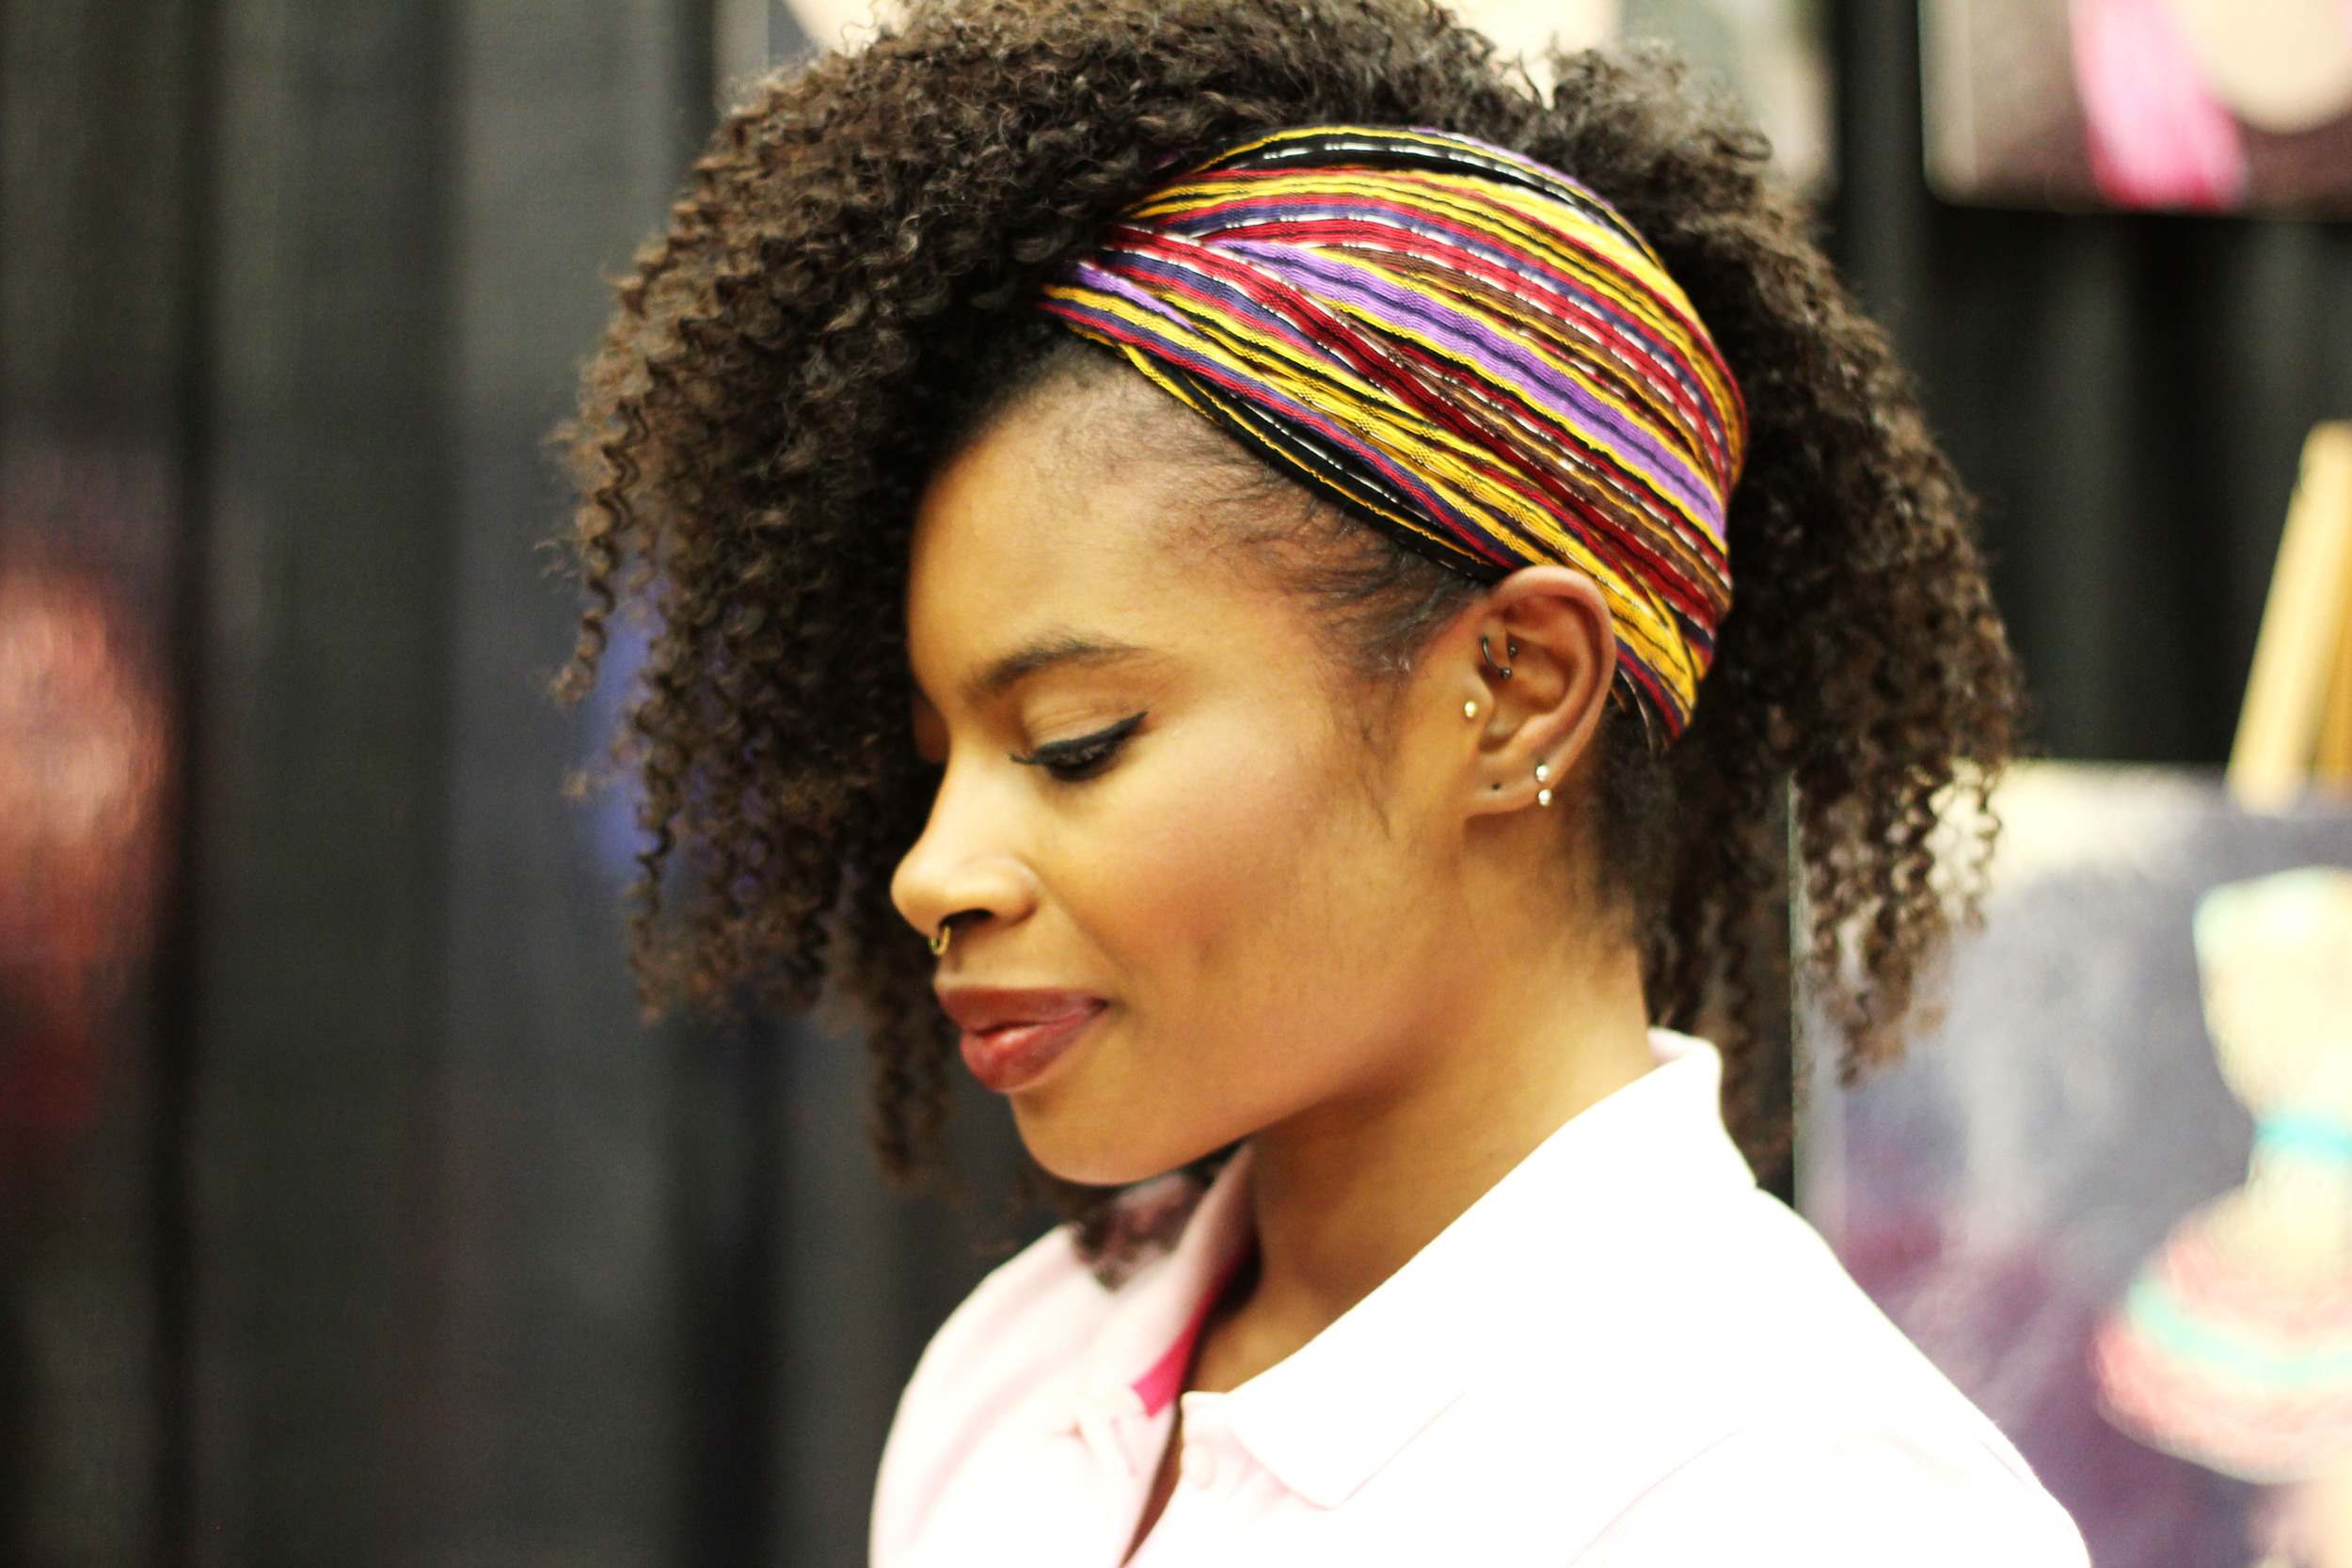 The Natural Me had so many cute headbands in solid colors and prints. Plus they seemed to be pretty versatile and I don't have one, so I added this one to my haul of products.